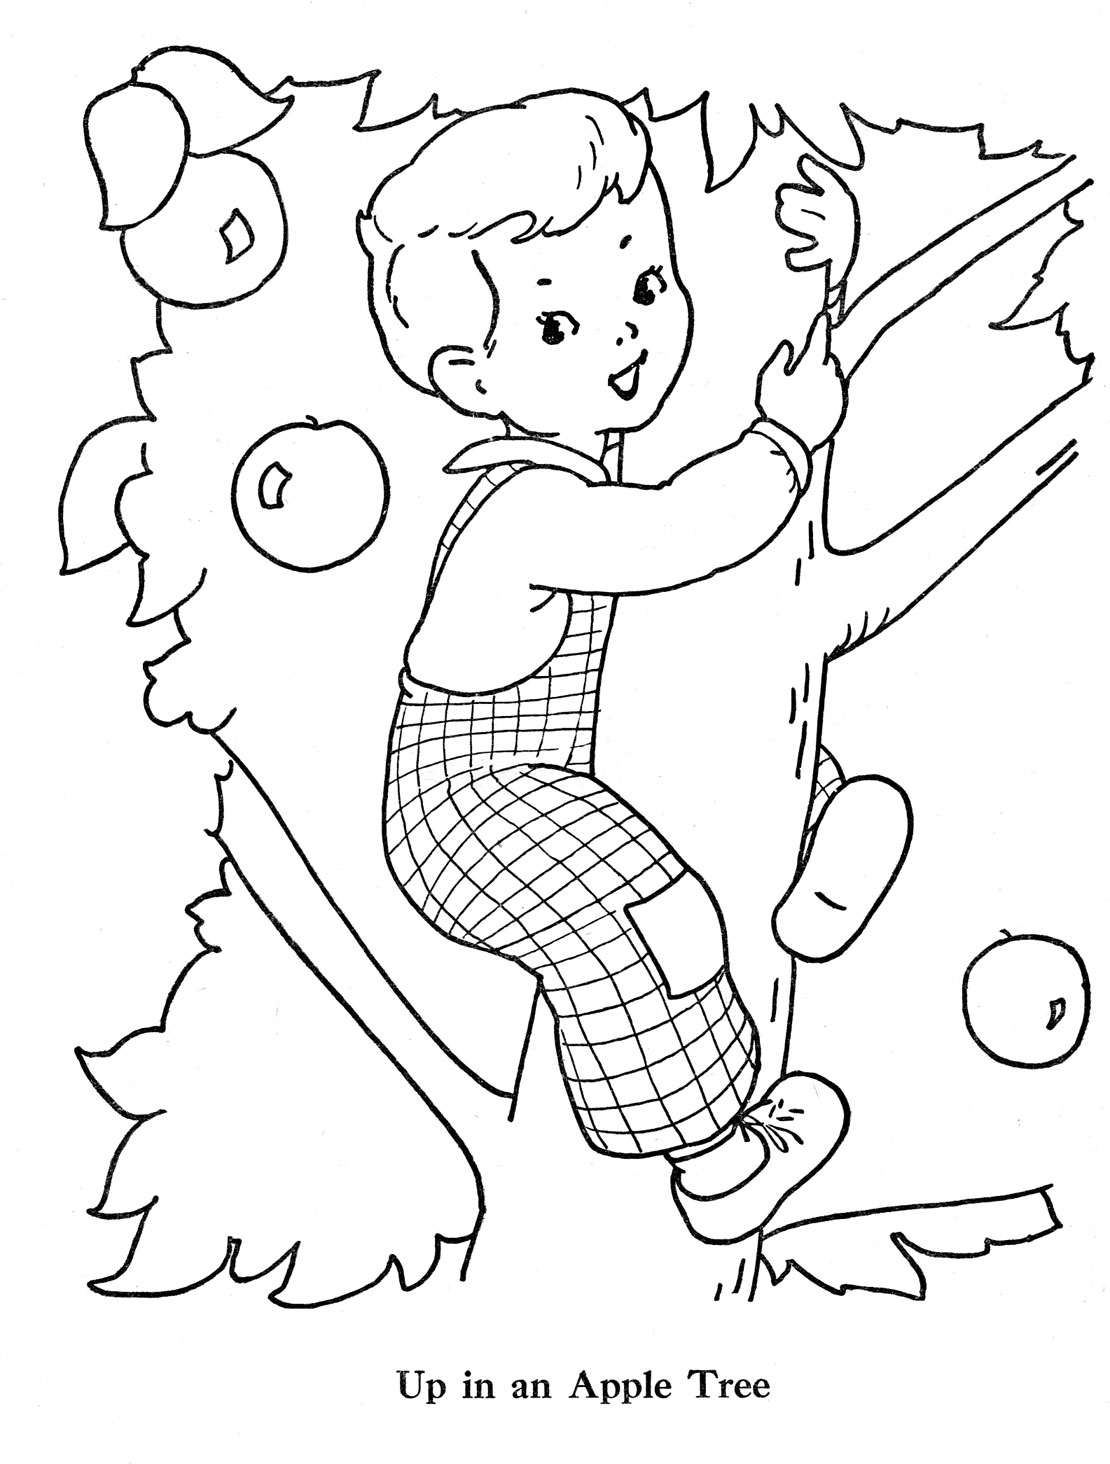 1000 images about coloring old fashion children on Coloring book embroidery